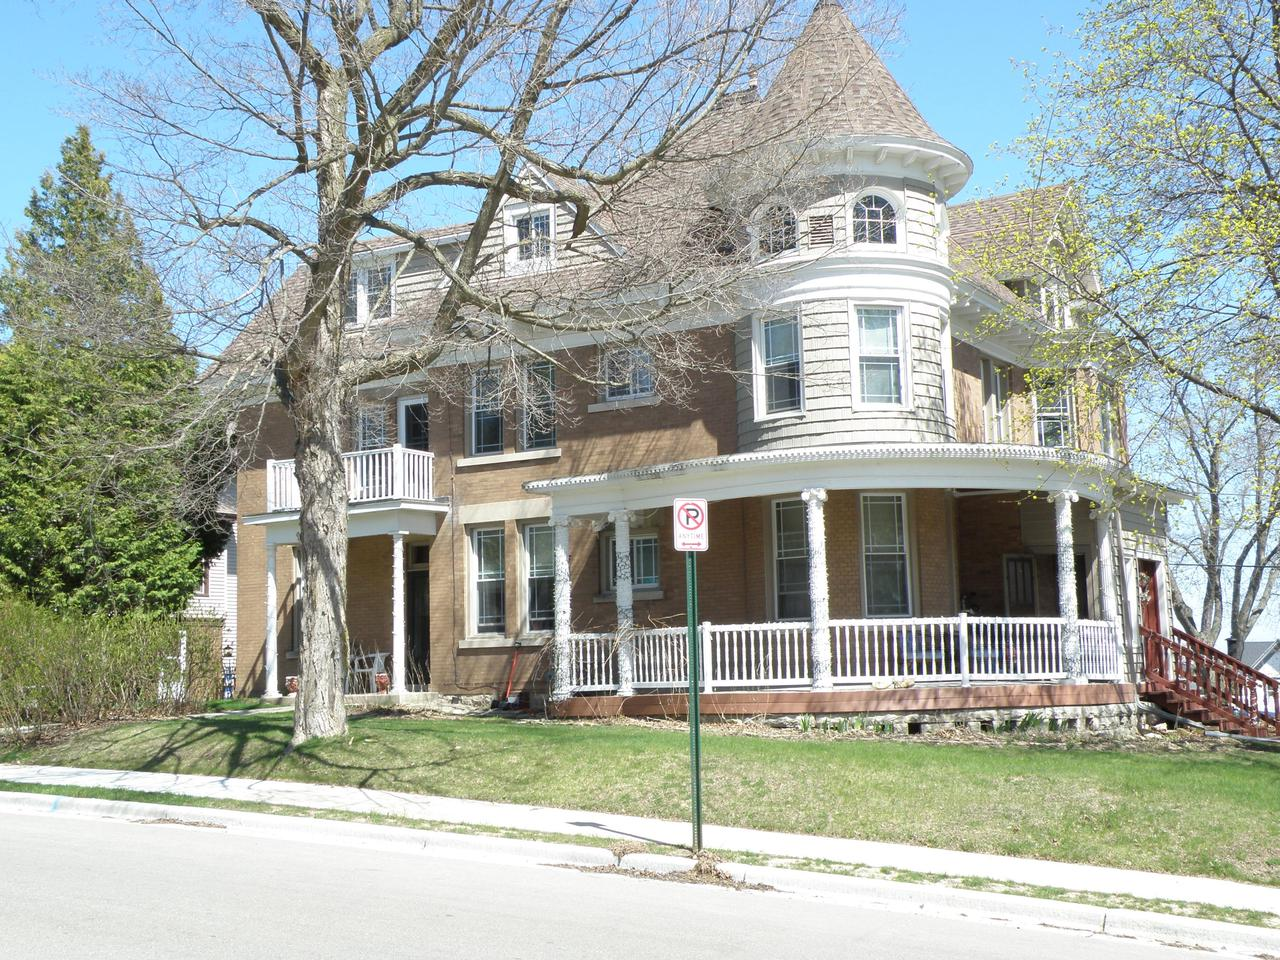 147 S 8th Ave AVENUE, WEST BEND, WI 53095